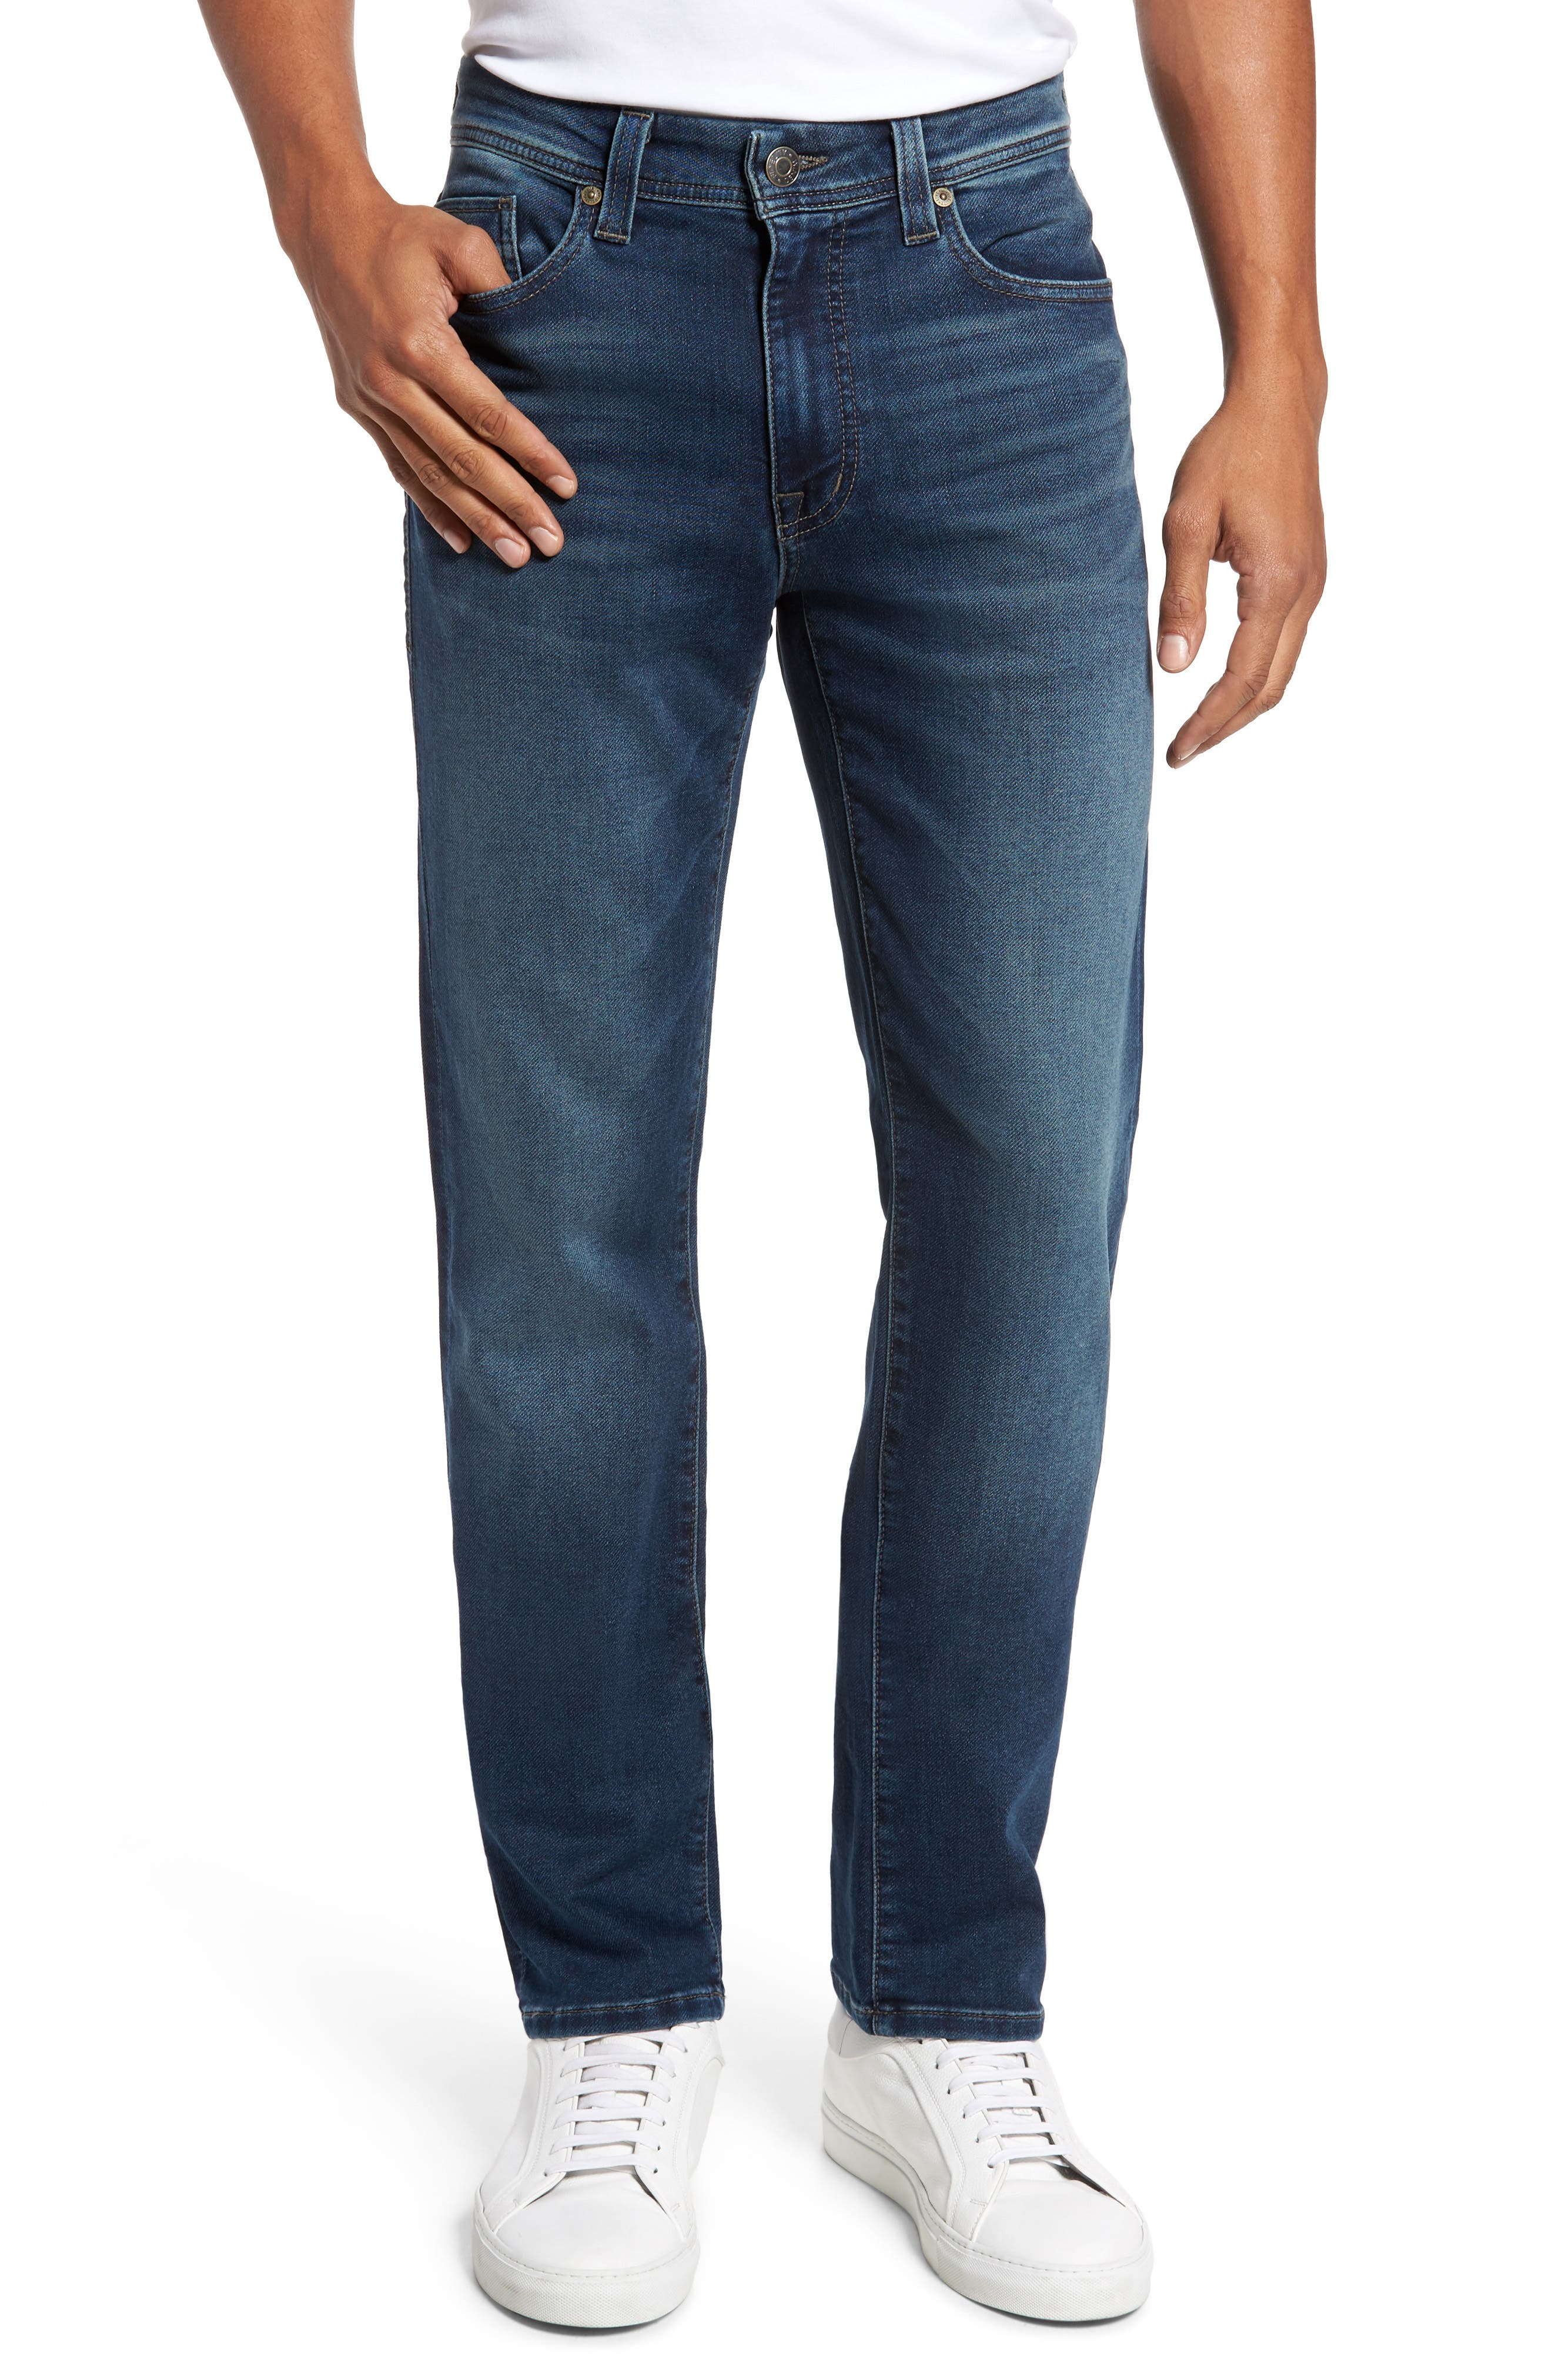 Jimmy Slim Straight Leg Jeans,                         Main,                         color, 400